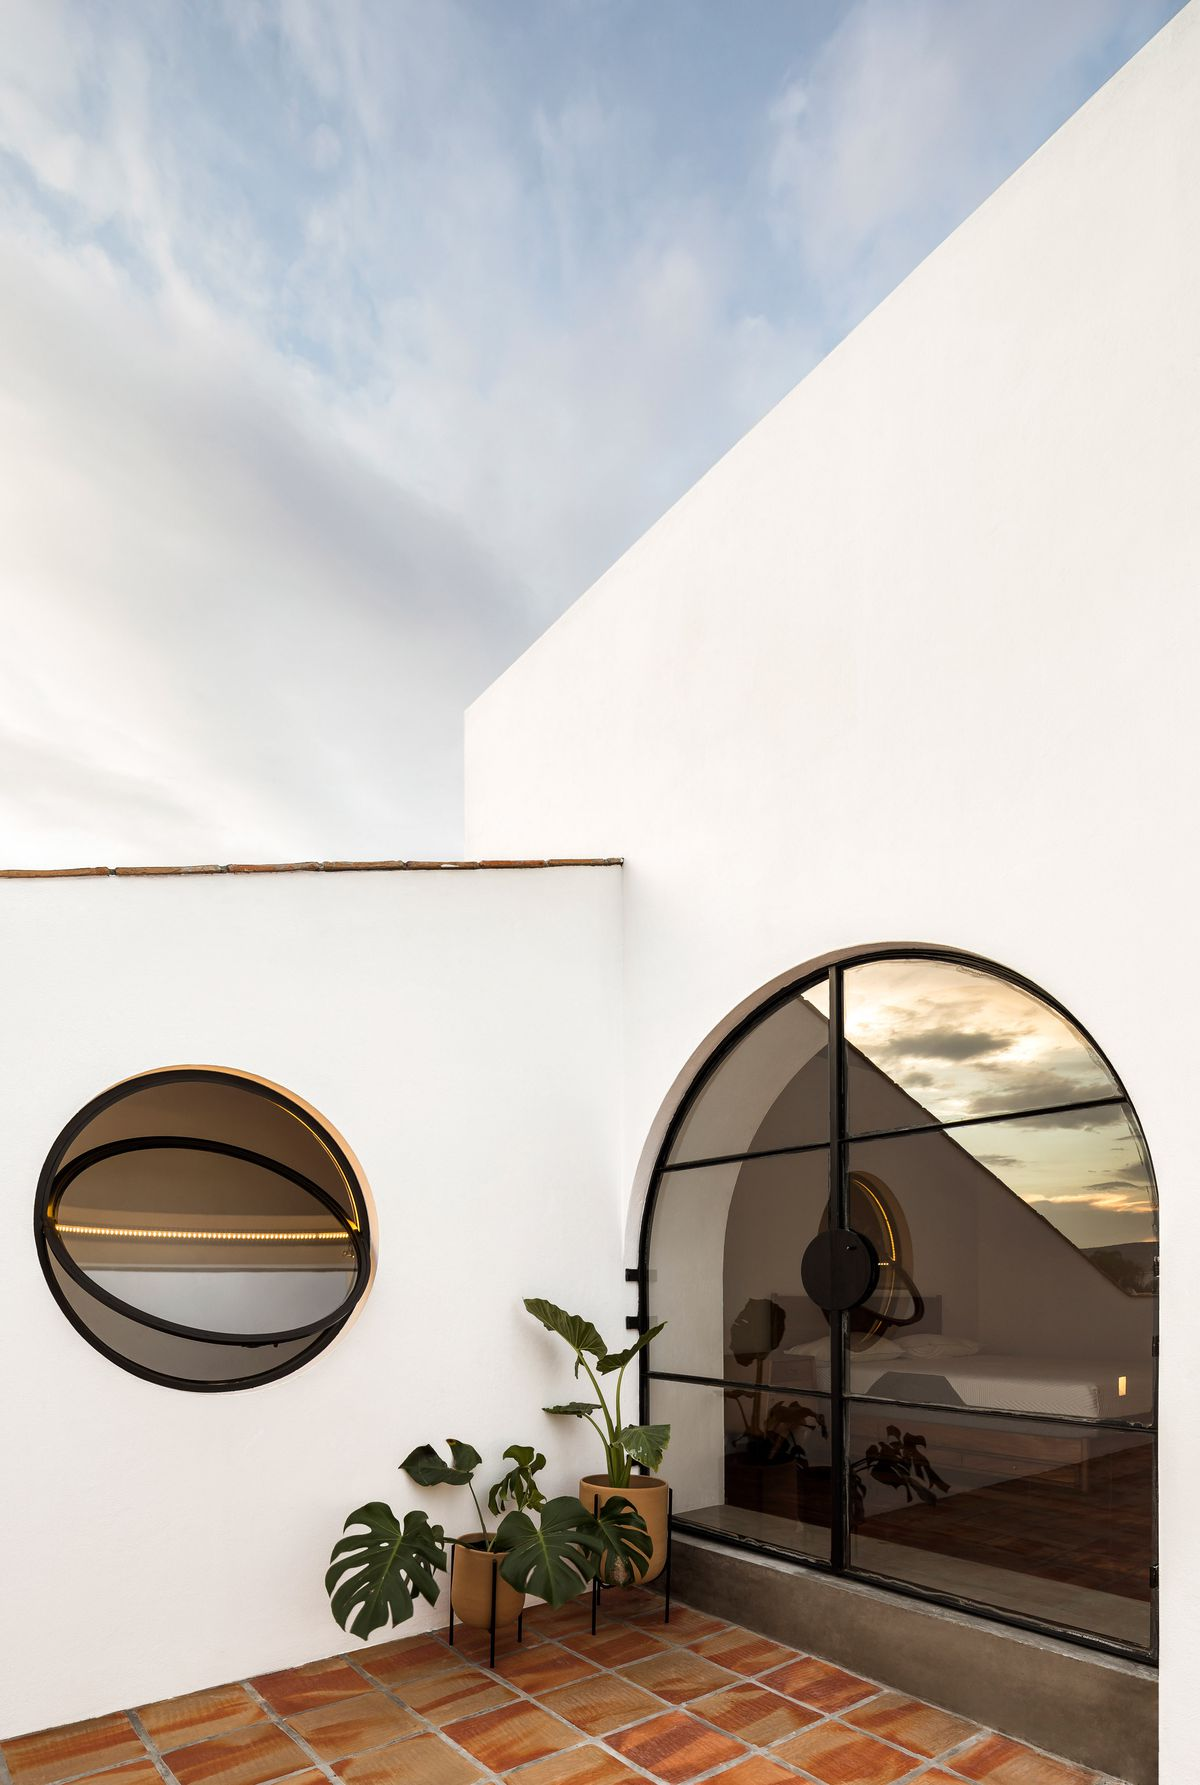 A rooftop terrace with round and arched windows and white walls.